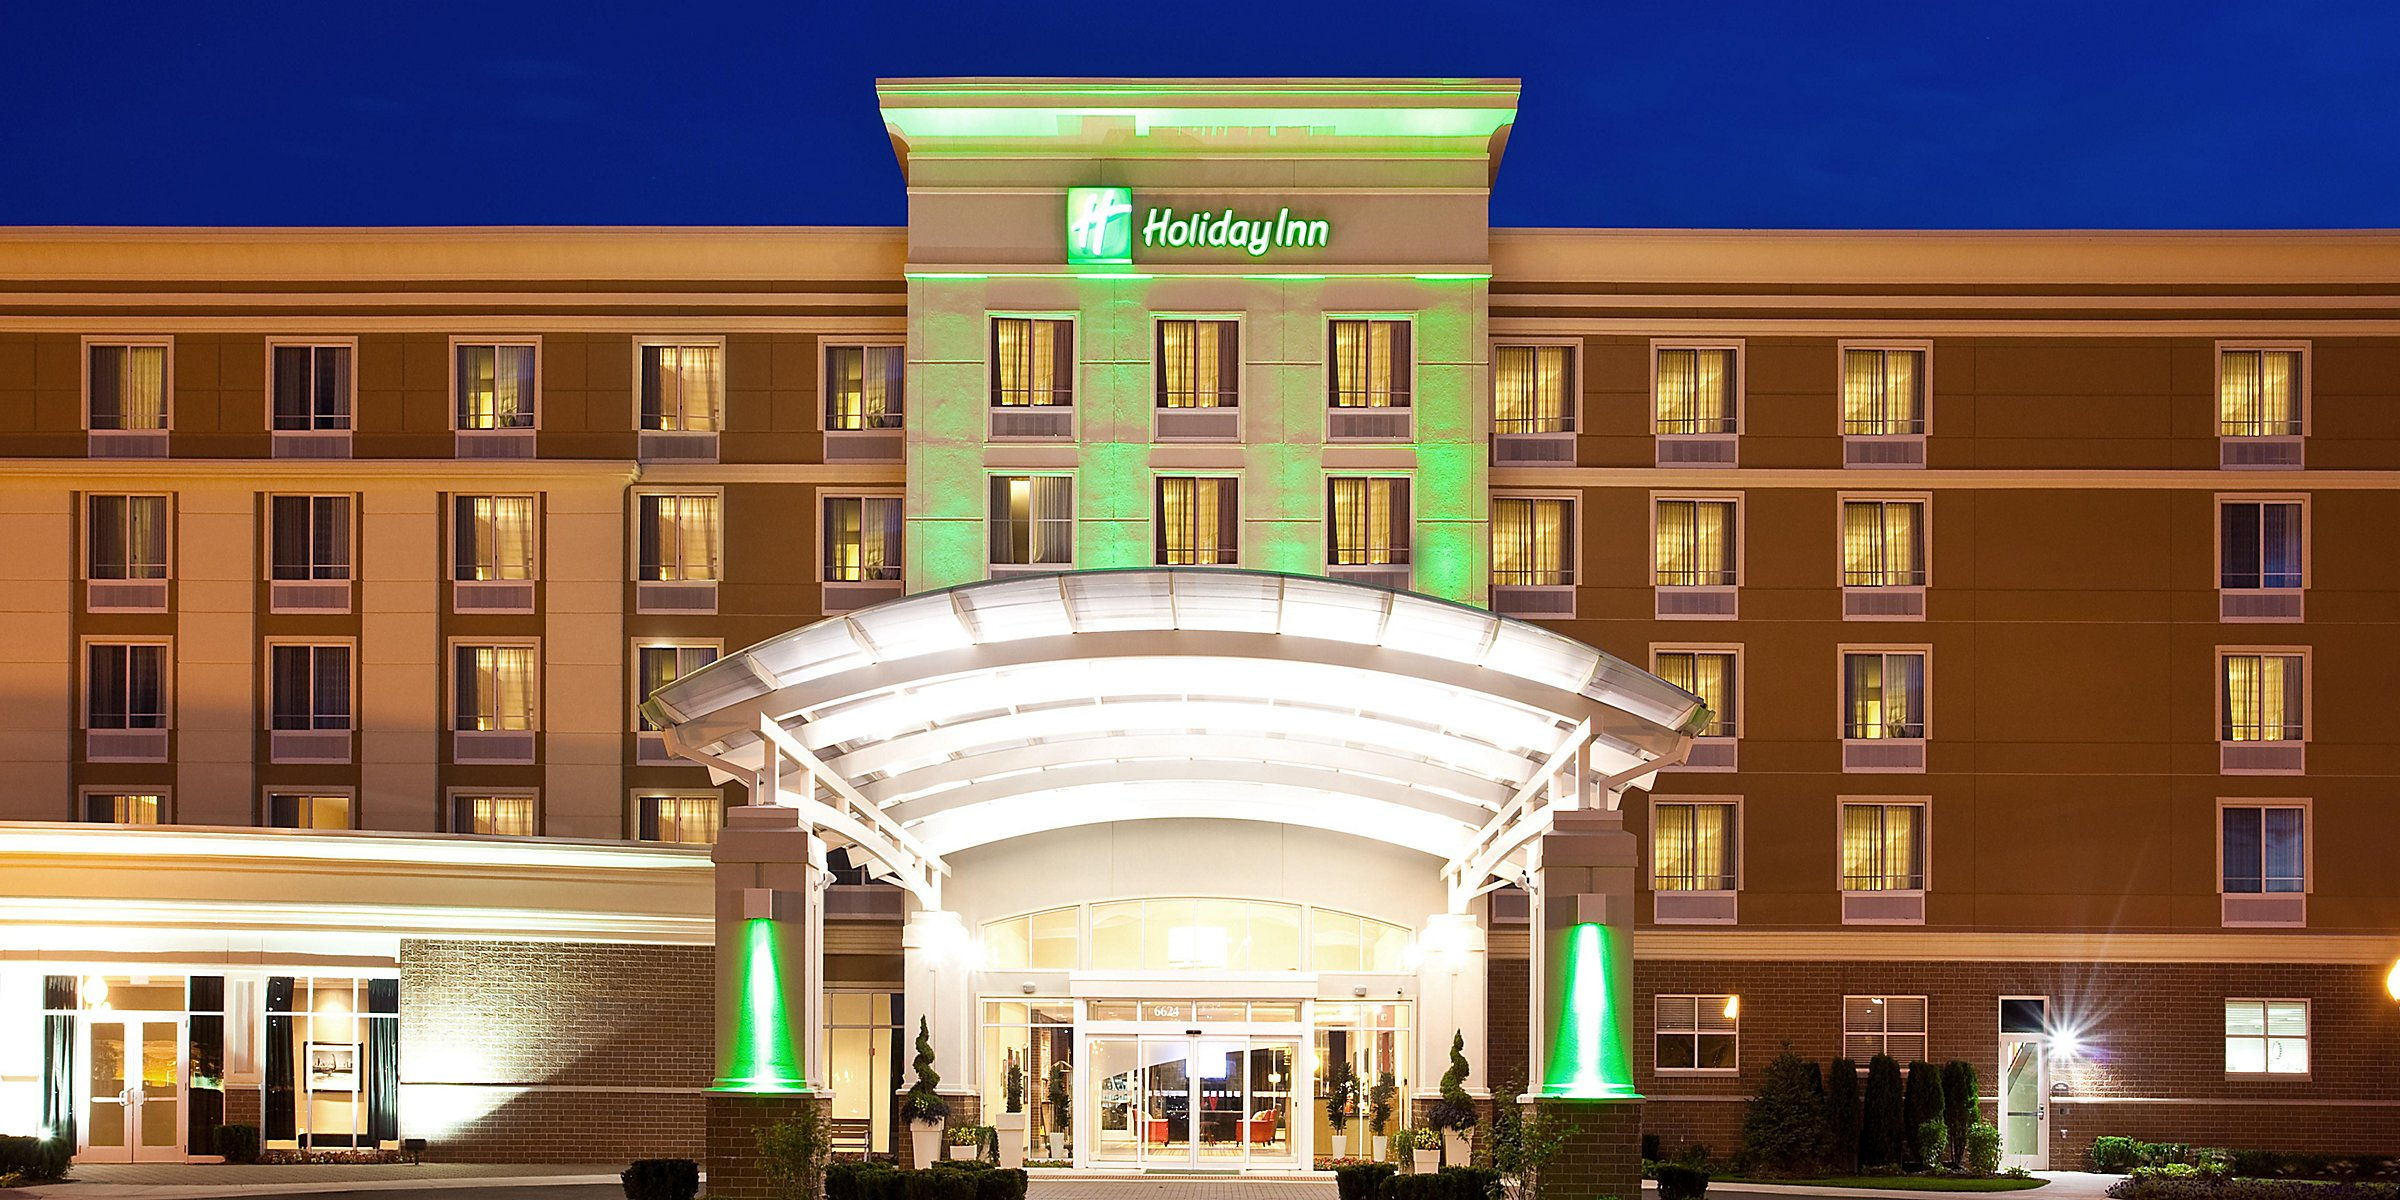 Hotels near Chicago Midway Airport | Holiday Inn Chicago